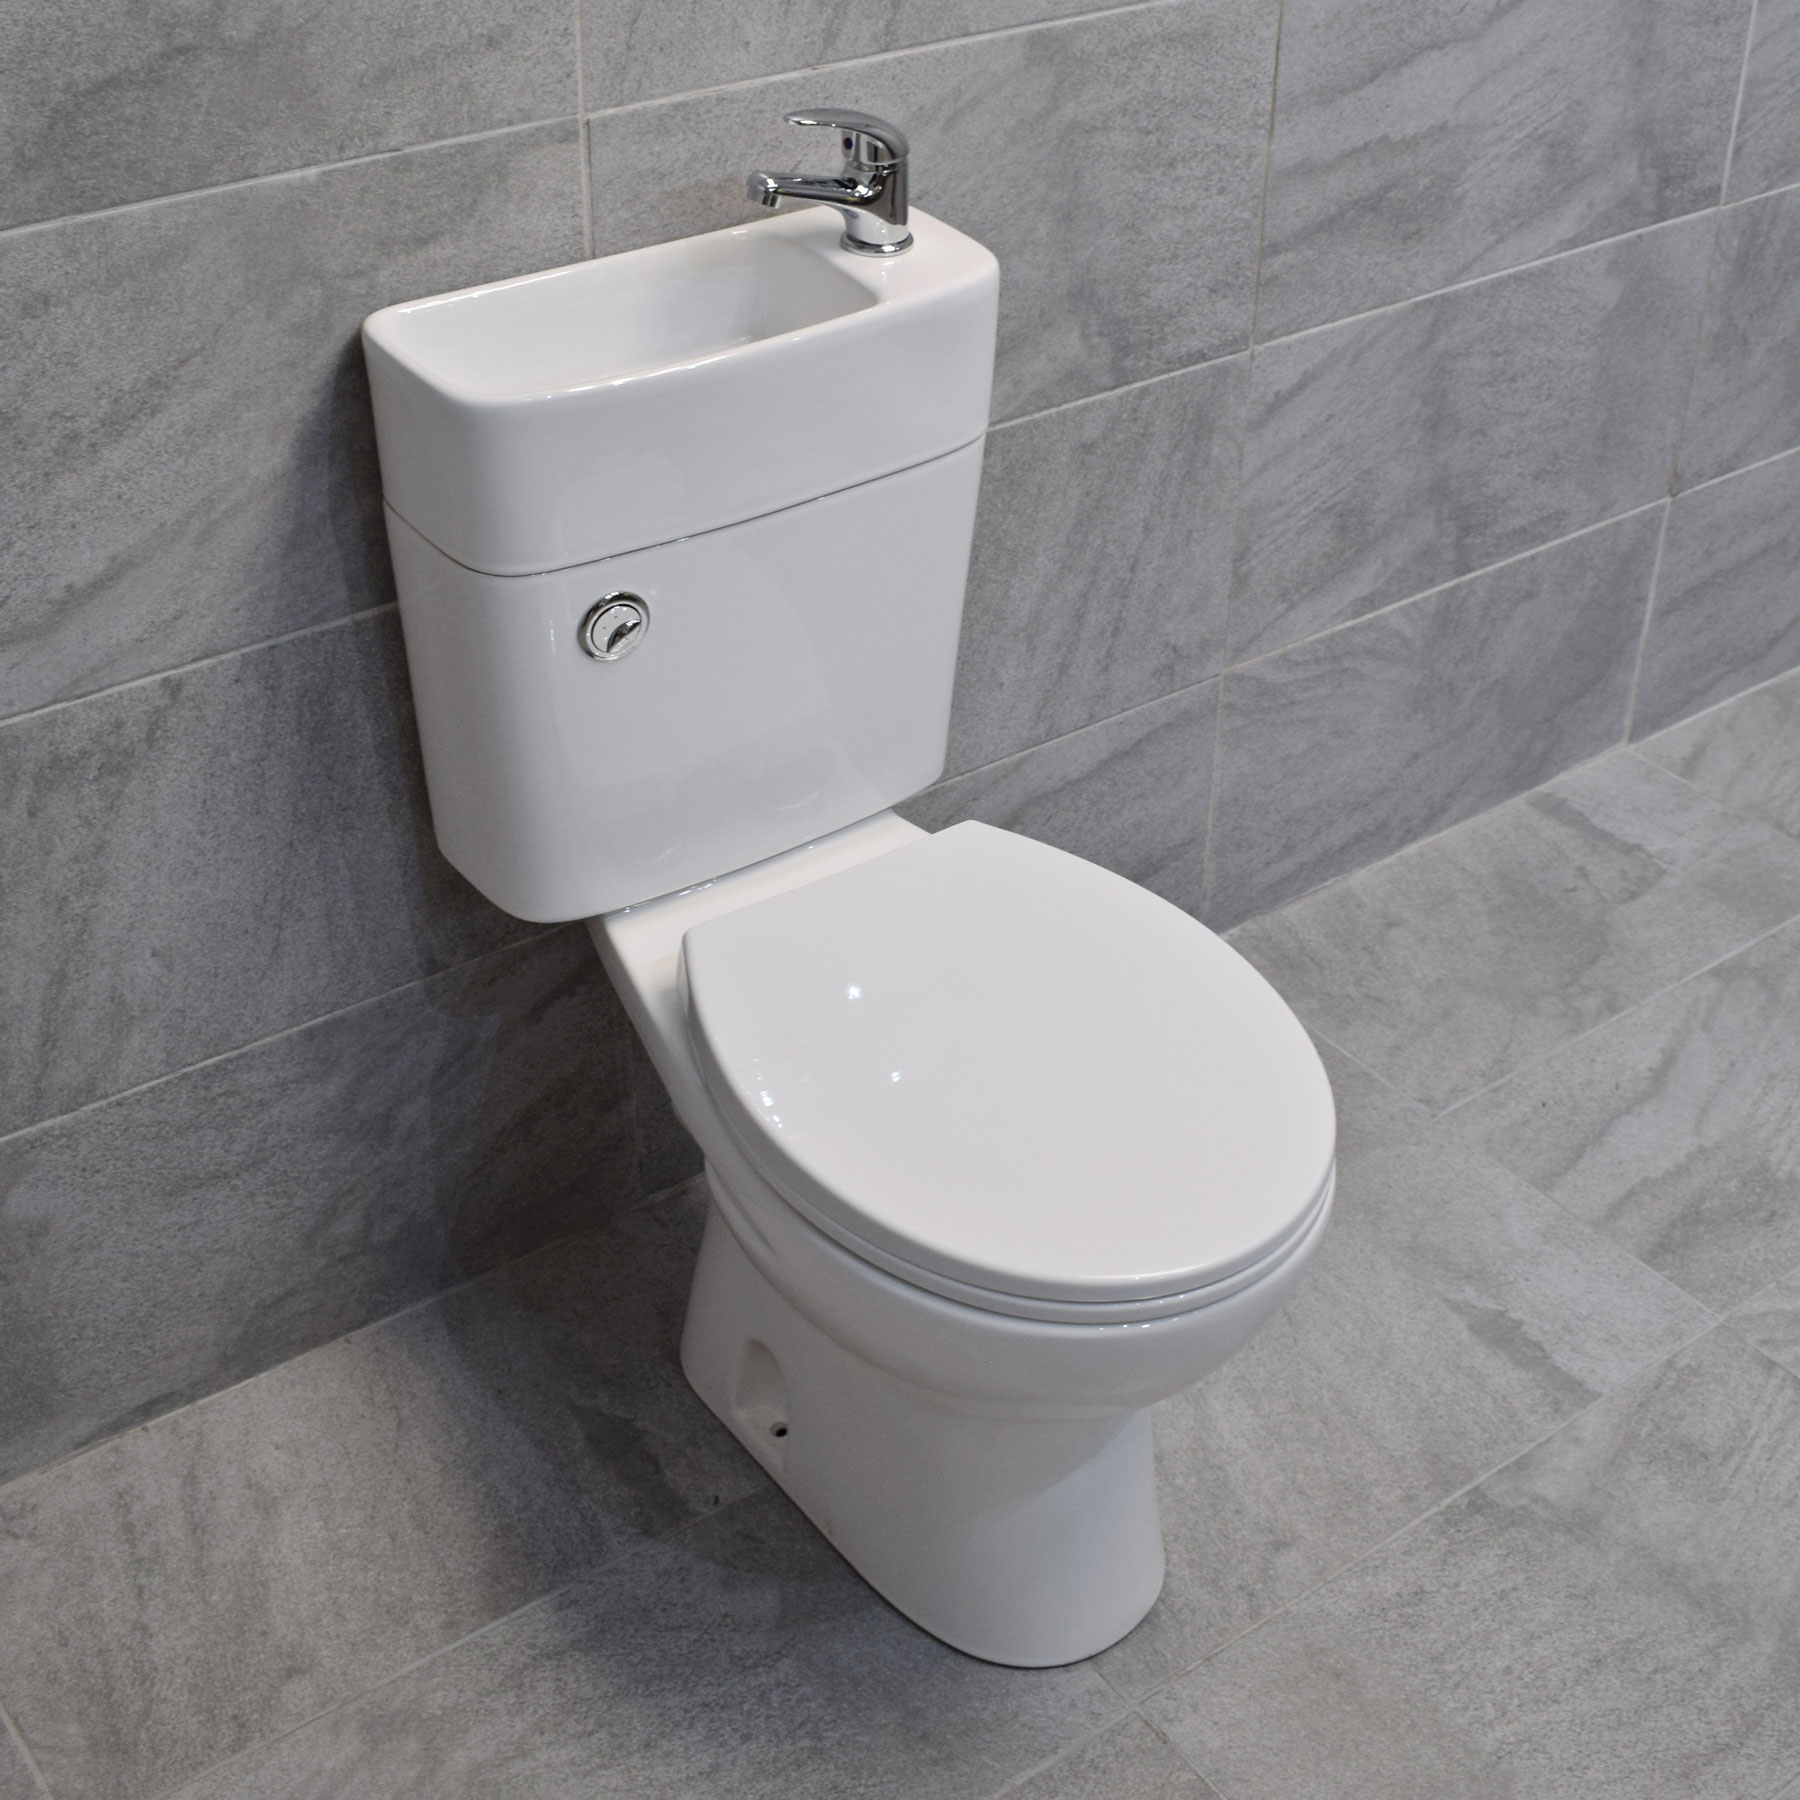 duo toilet basin combo combined toilet with sink tap space savingduo toilet basin combo combined toilet with sink tap space saving cloakroom unit